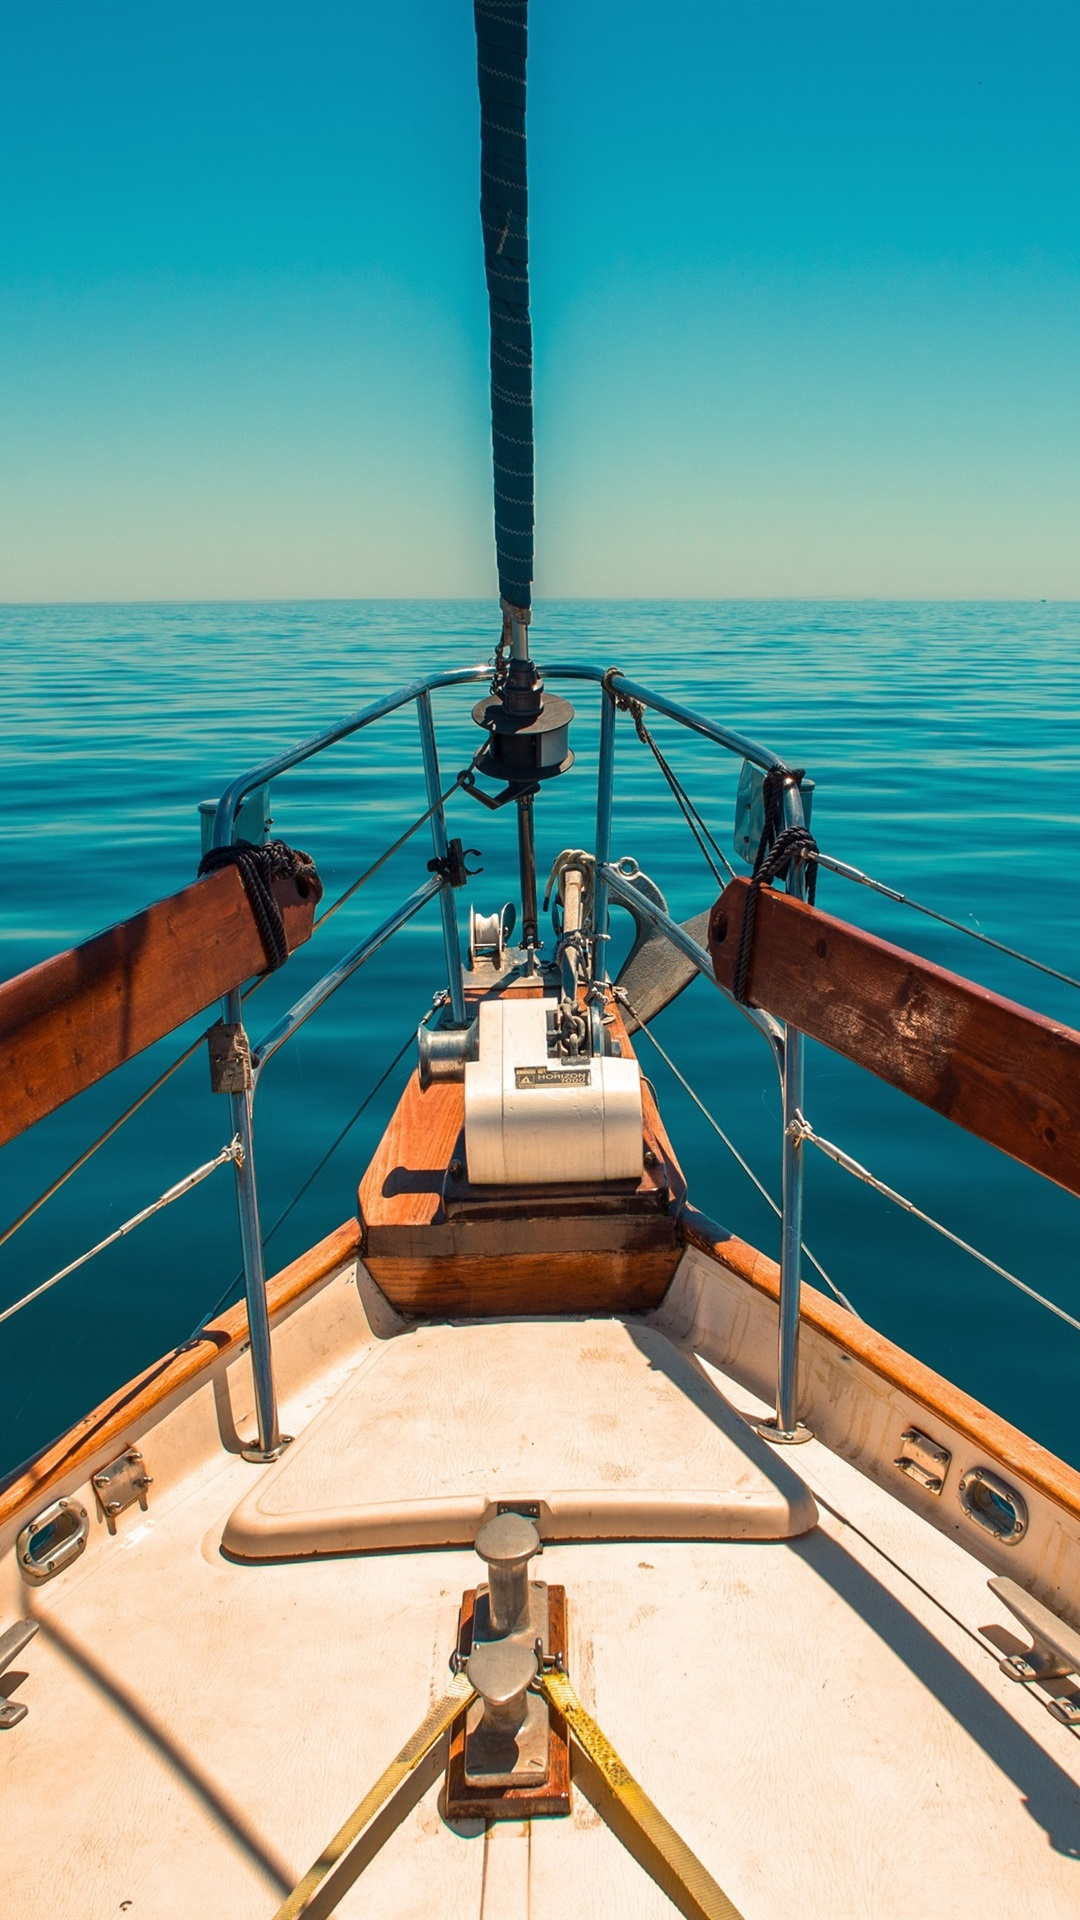 Yacht Blue Sea 1080x1920 Iphone 8 7 6 6s Plus Wallpaper Background Picture Image